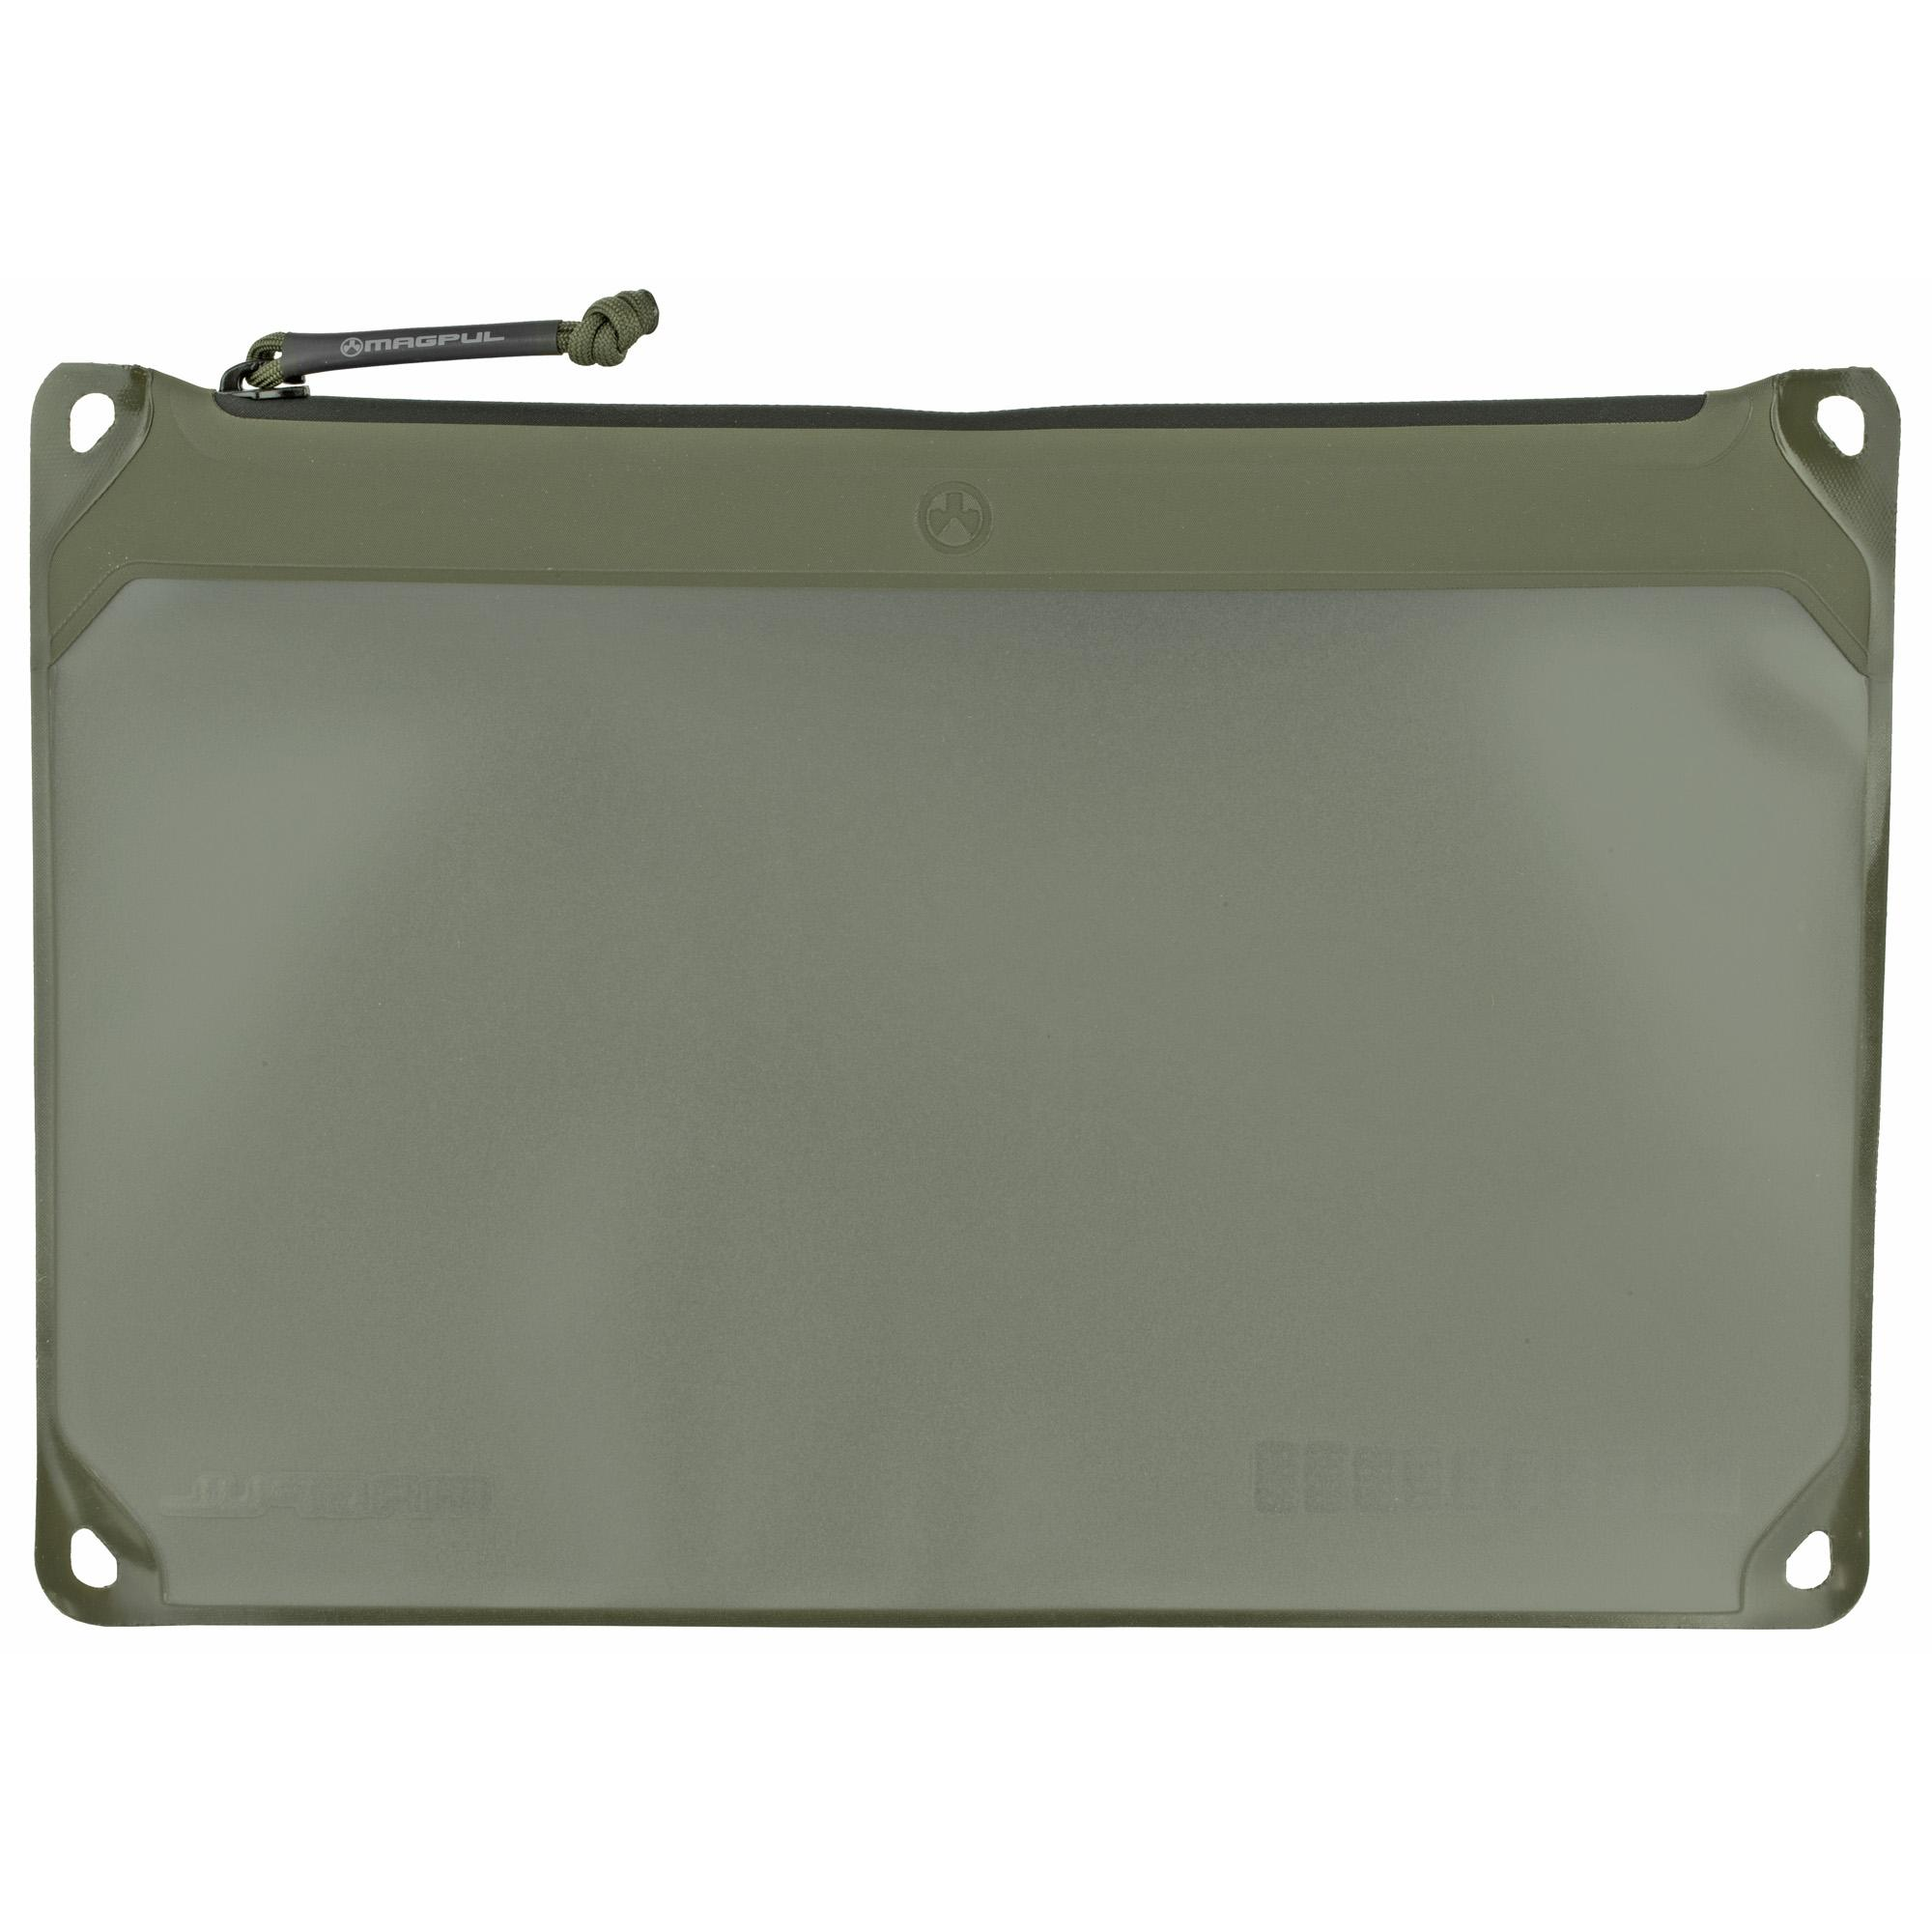 Magpul Industries Magpul Daka Window Pouch Large Olive Drab